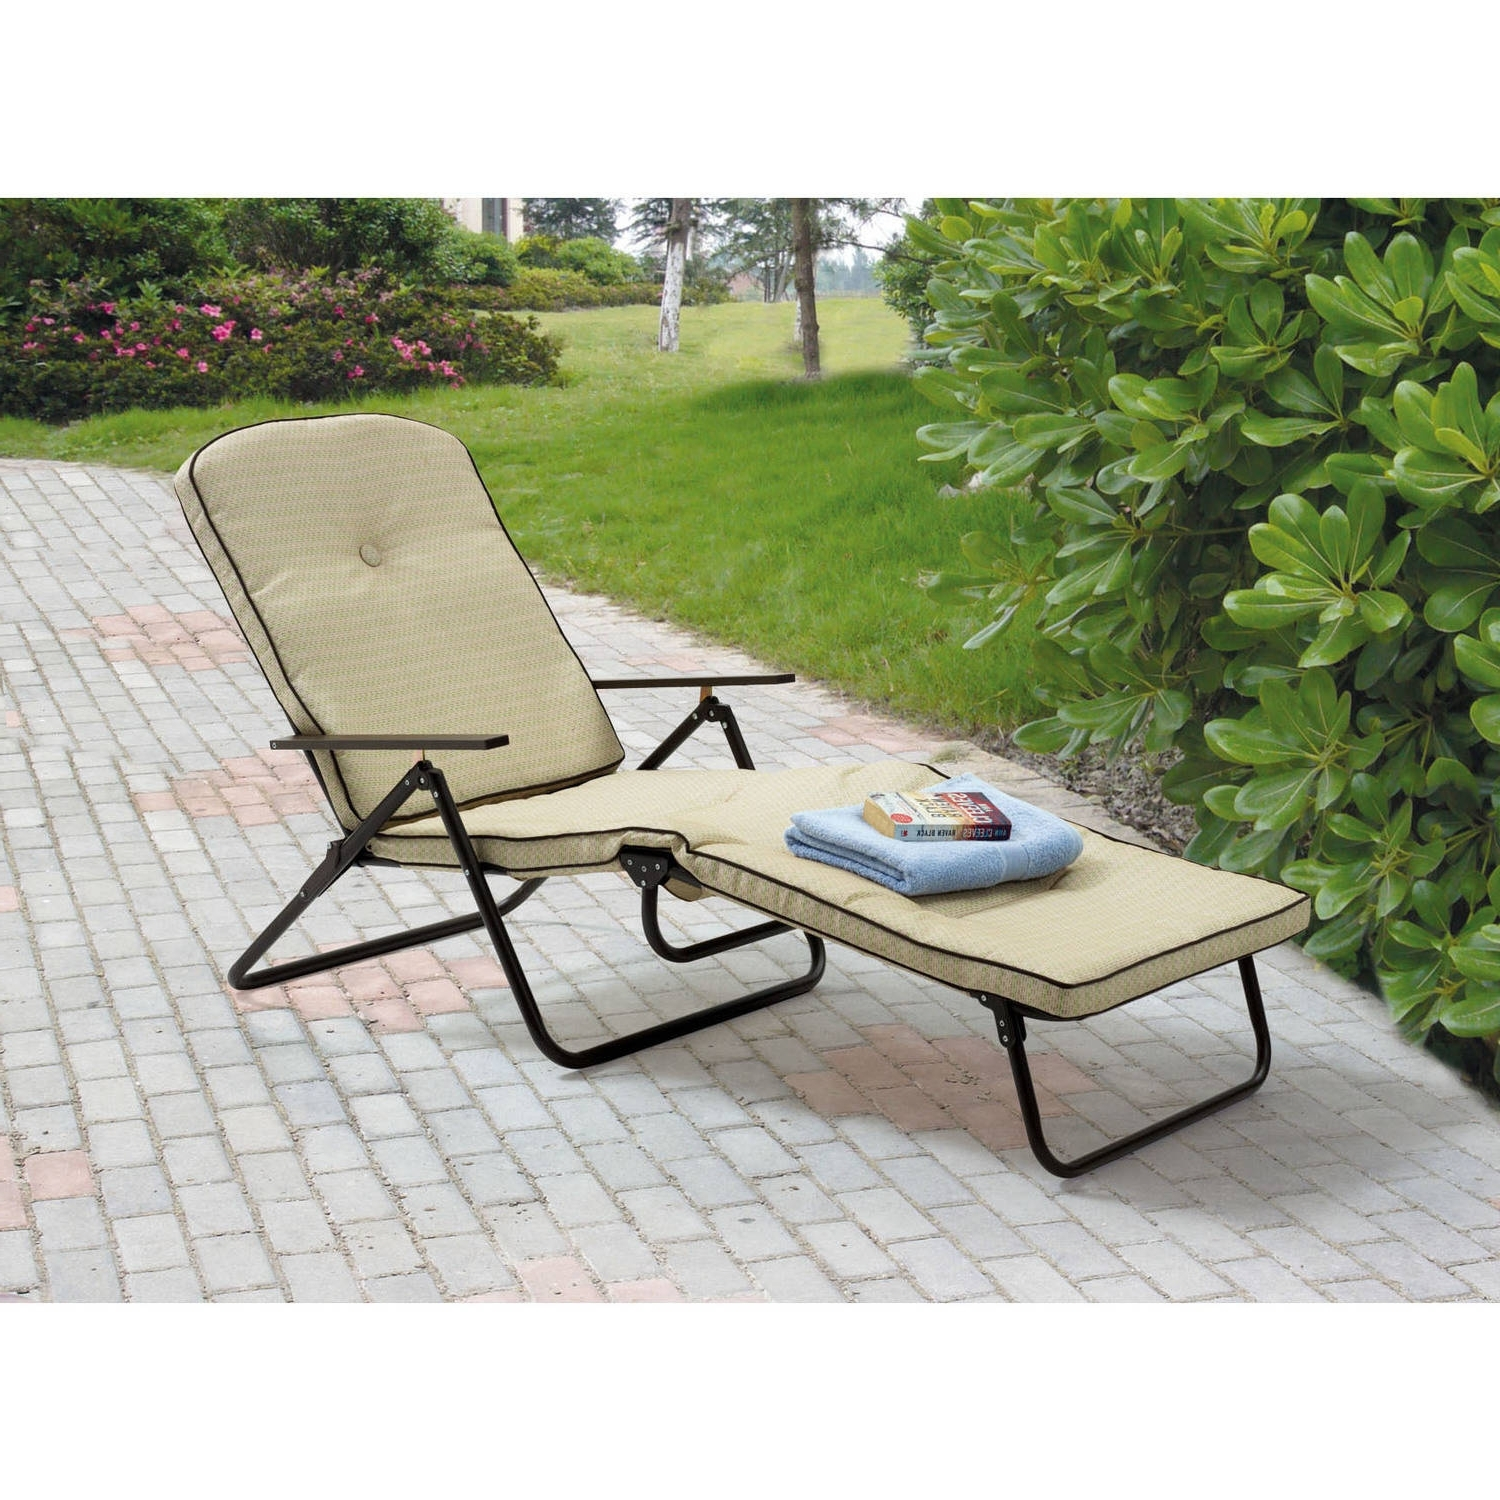 Walmart Chaise Lounges In Most Up To Date Mainstays Sand Dune Outdoor Padded Folding Chaise Lounge, Tan (View 9 of 15)